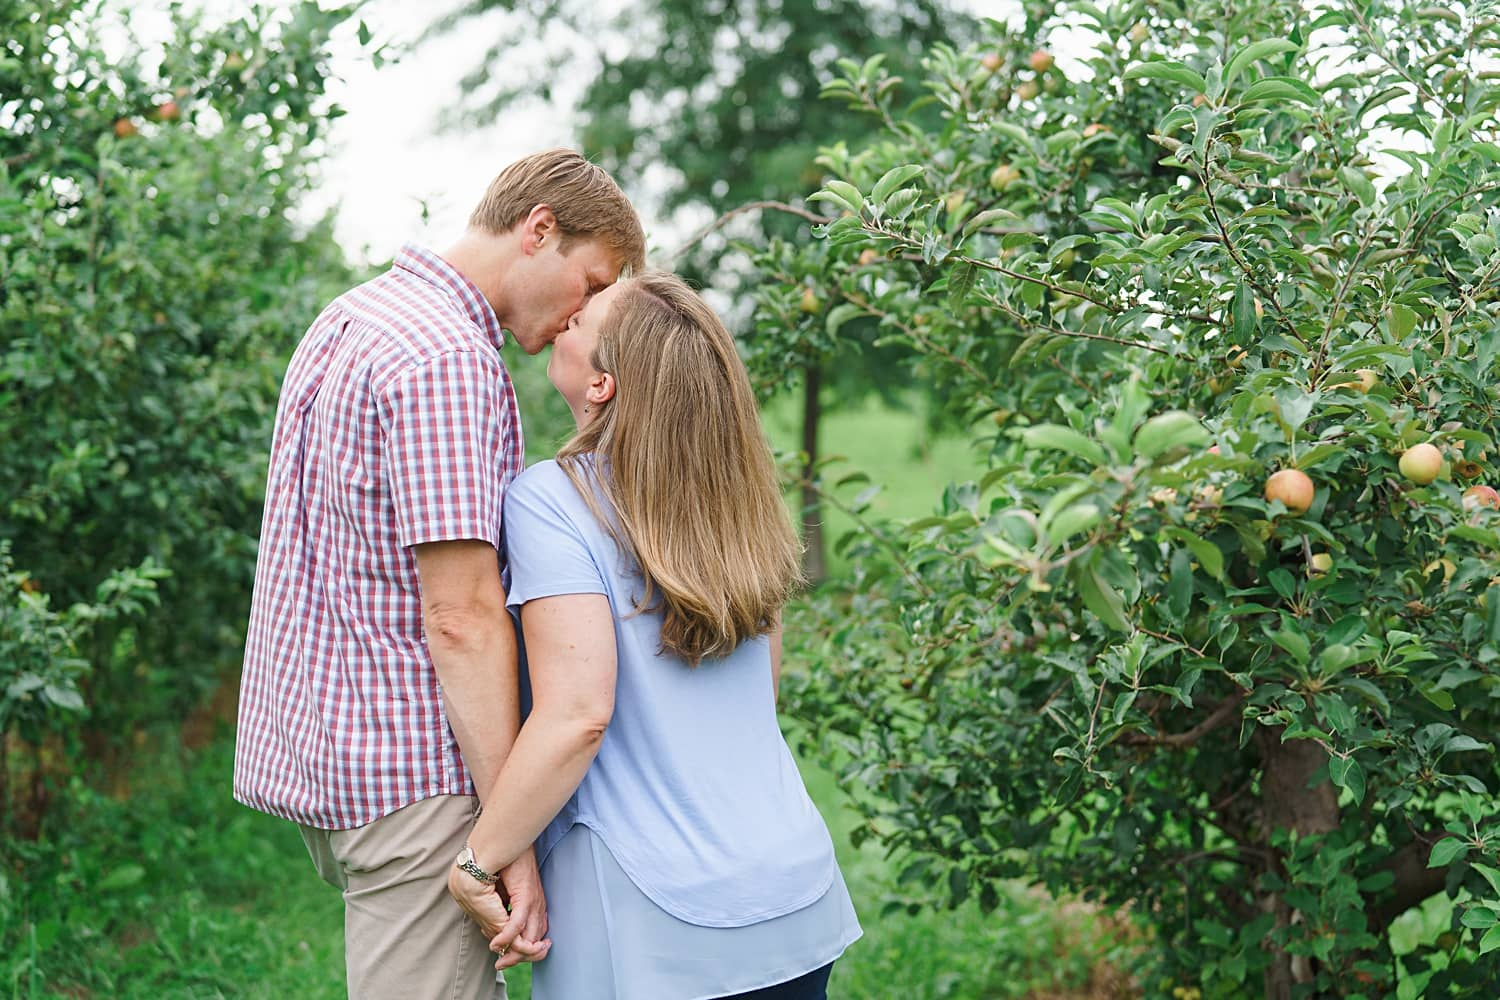 engagement photos at apple orchard in iowa